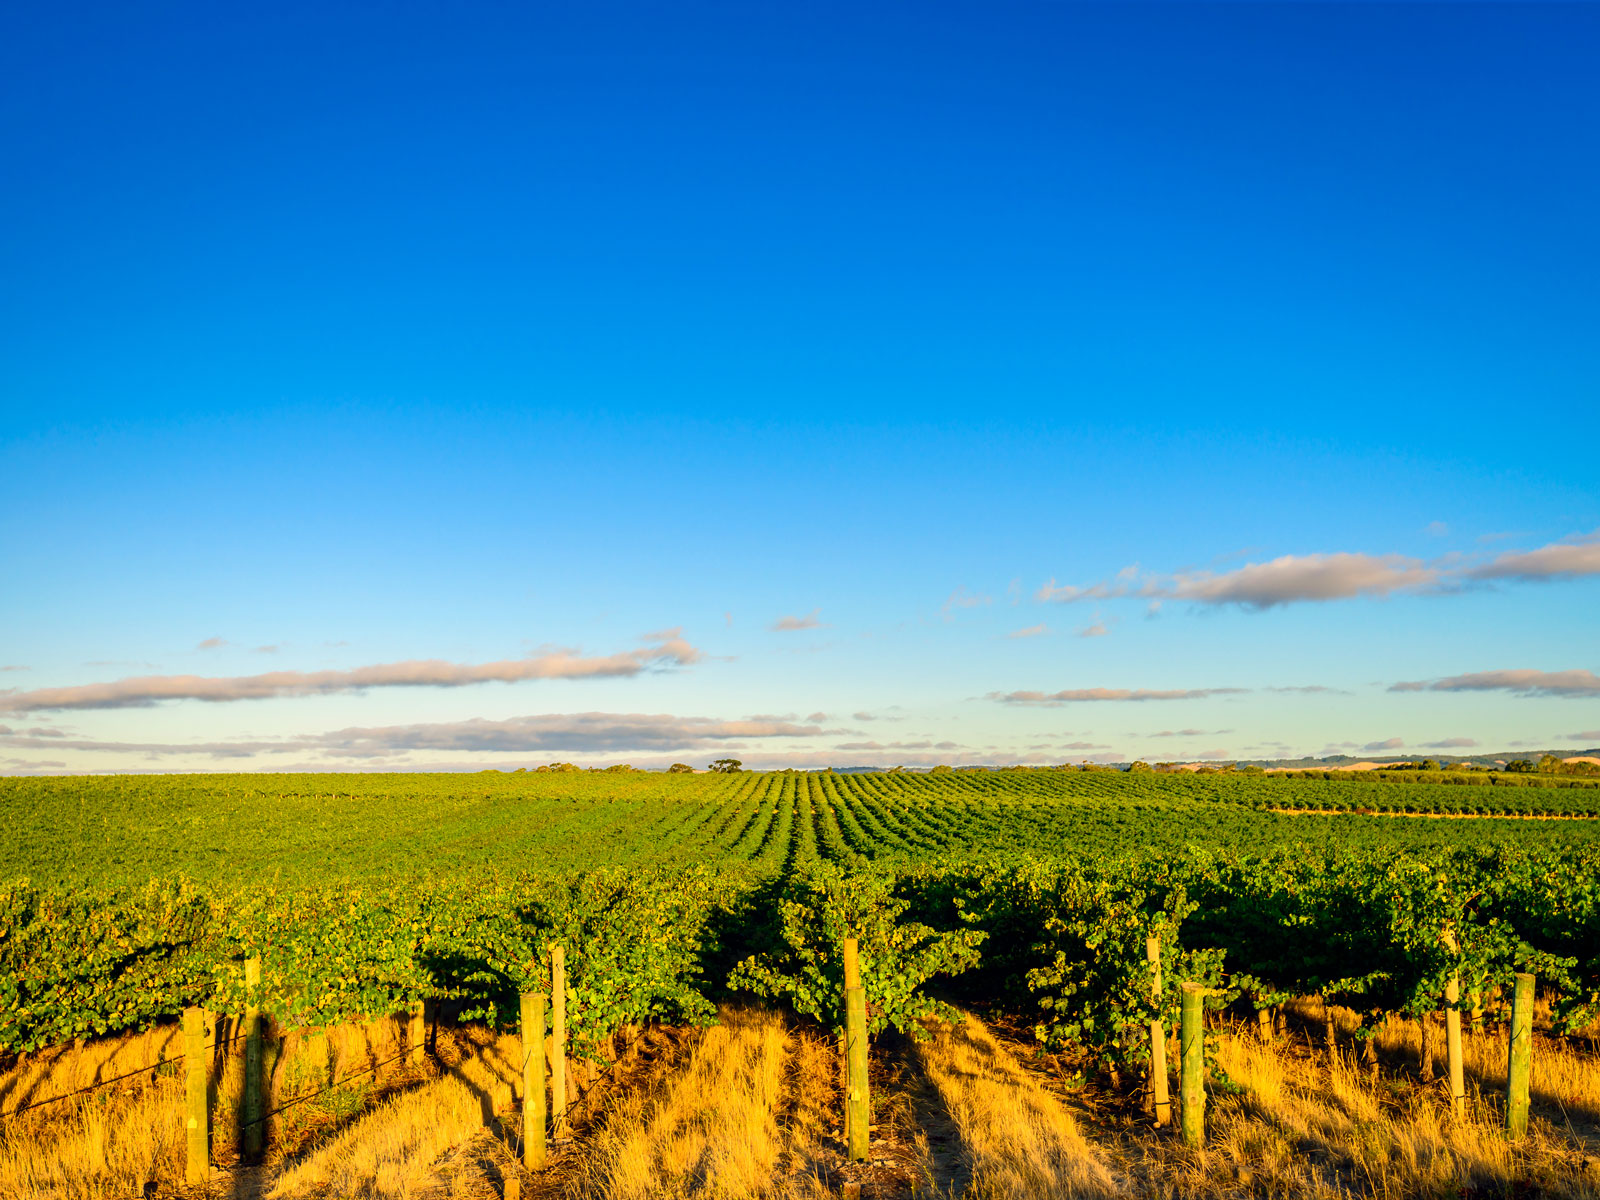 A Guide to Australia's McLaren Vale Wine Region: The Vineyards to Visit and Best Bottles to Try